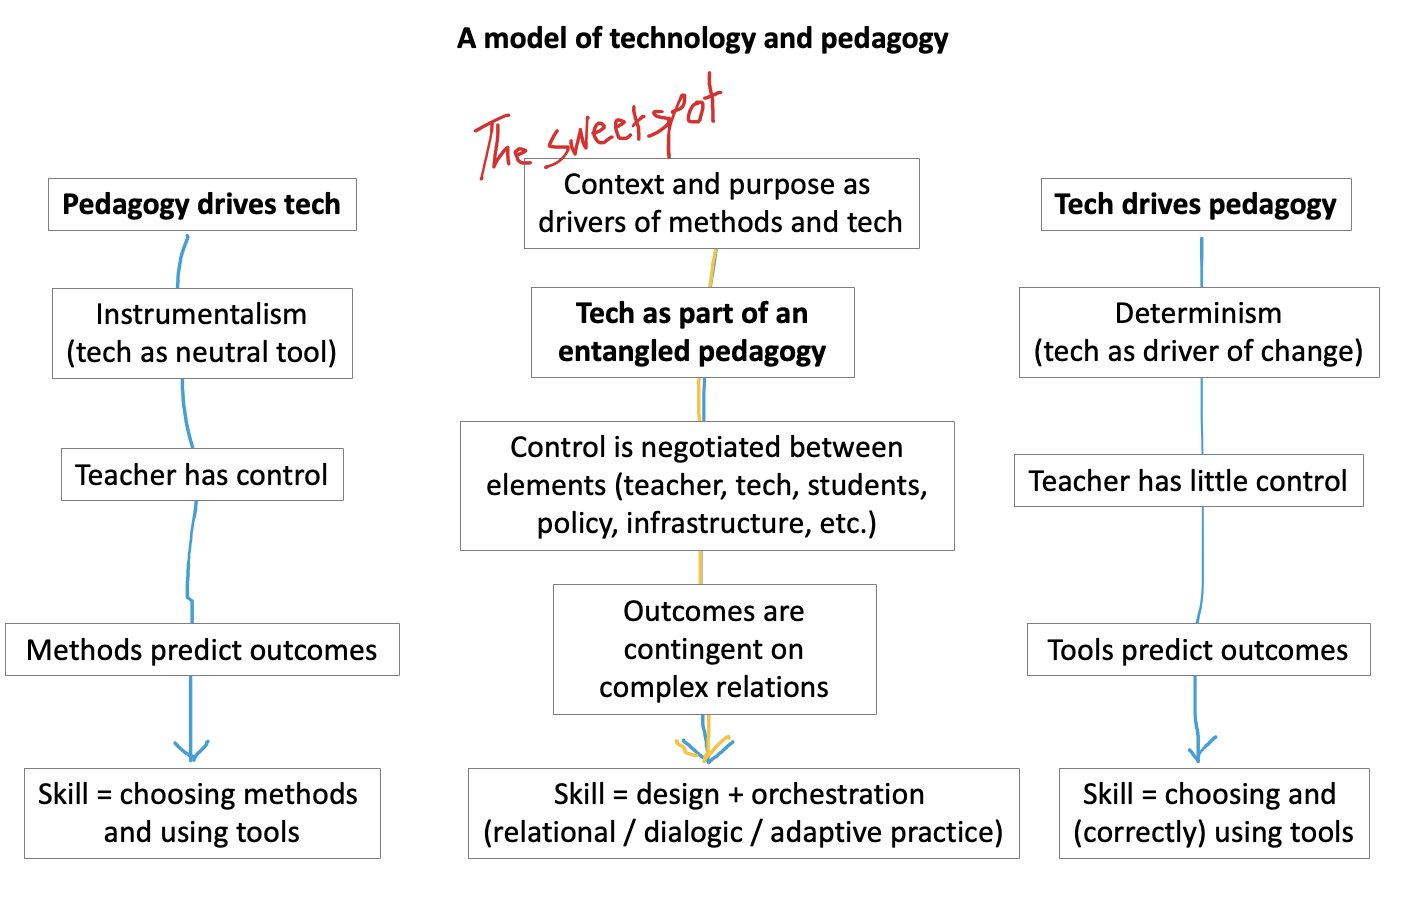 Sketch of a model of pedagogy and technology